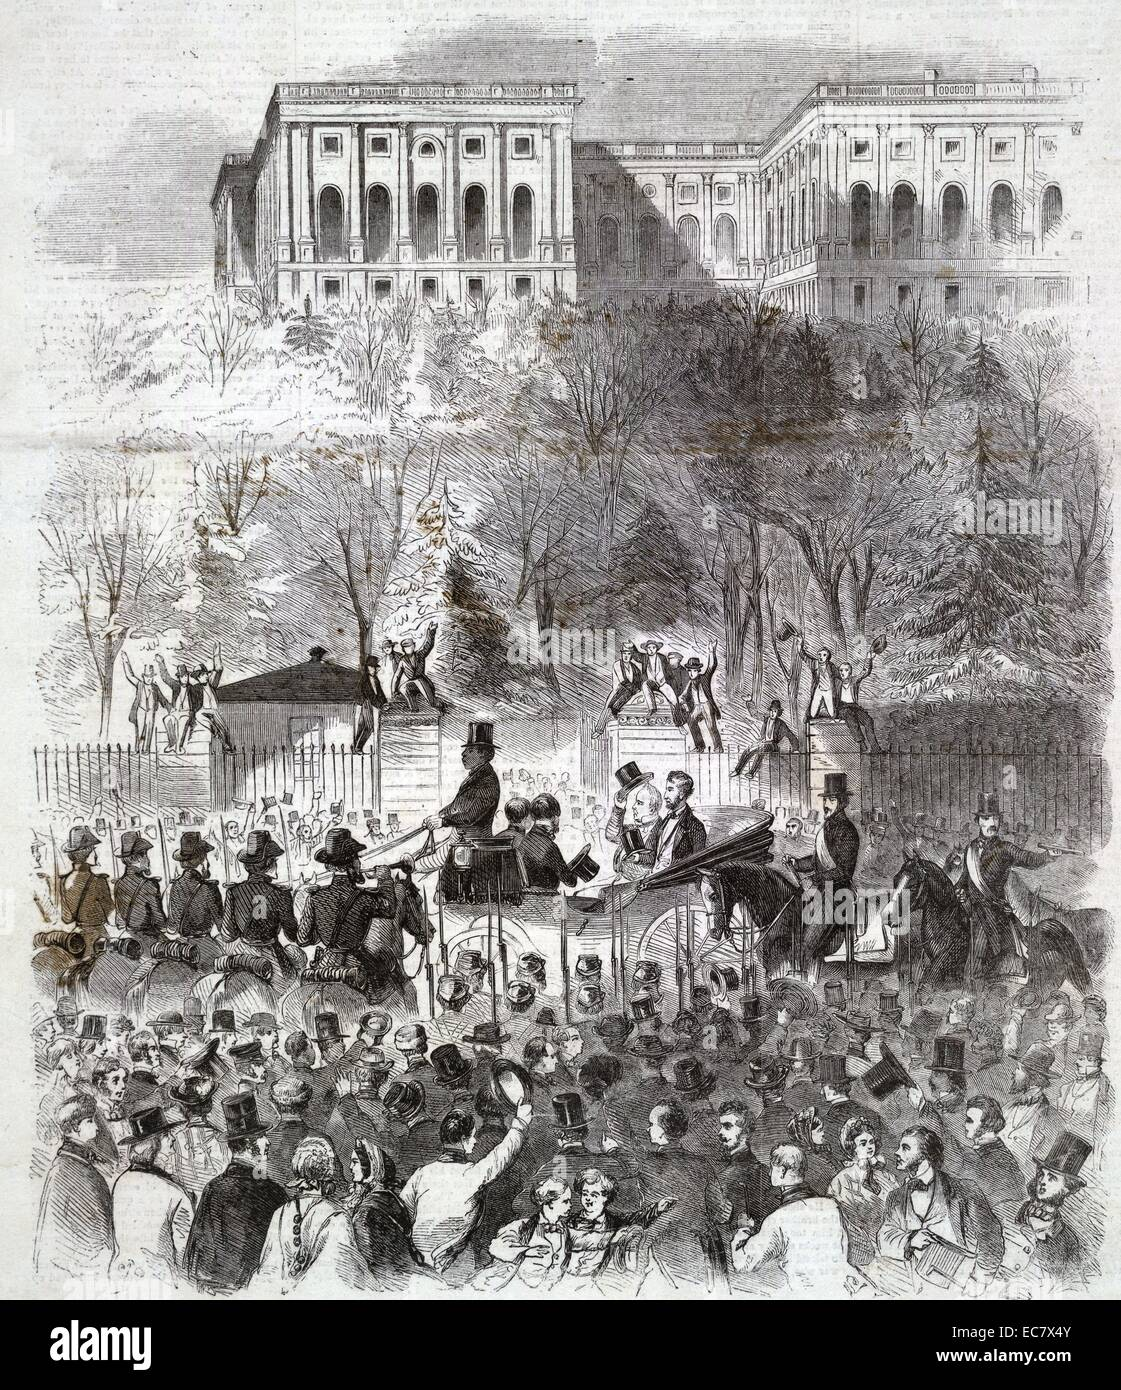 President-elect Lincoln and President Buchanan on their way to Lincoln's inauguration - Stock Image